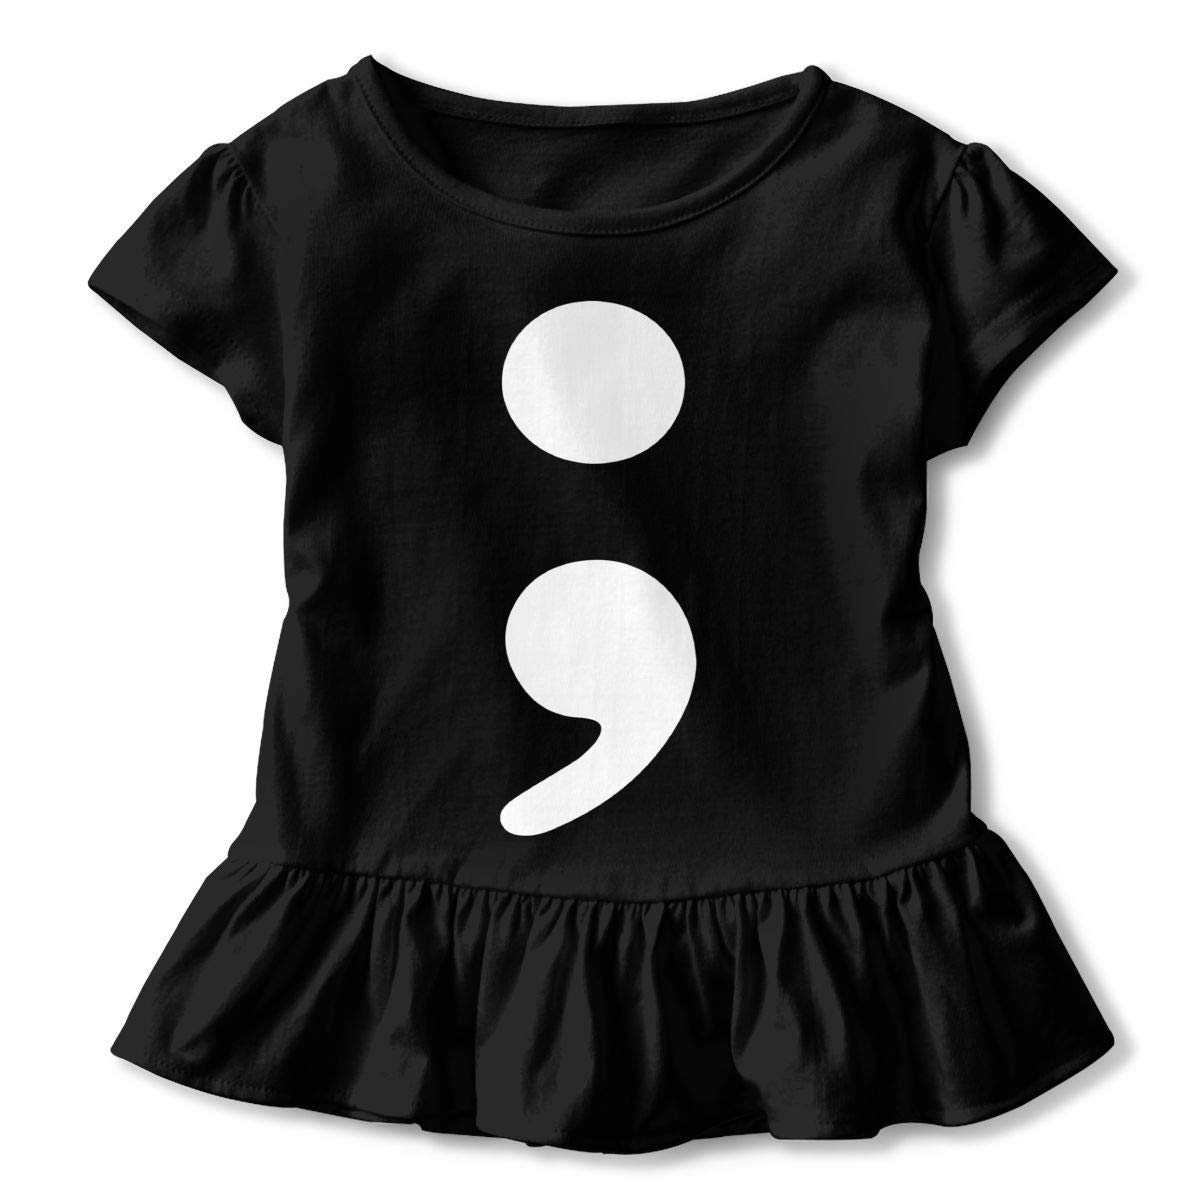 2-6T Kawaii Blouse Clothes with Falbala PMsunglasses Short Sleeve Semi Colon T-Shirts for Girls